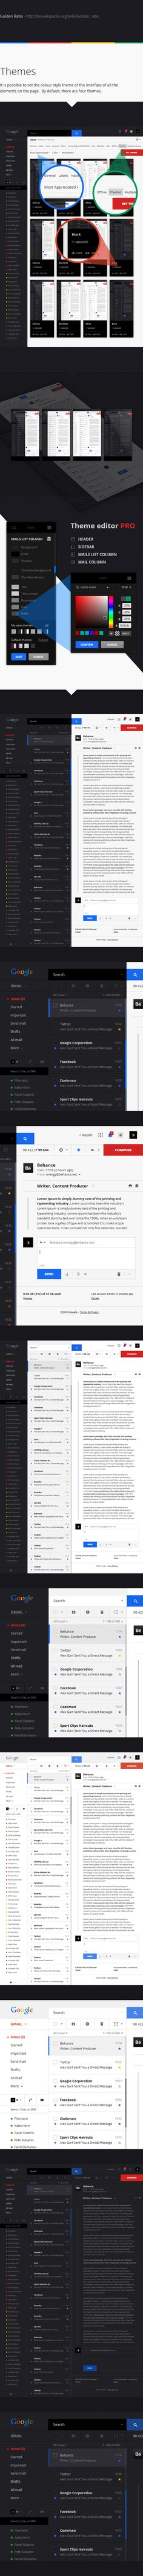 Gmail Redesign Concept on Behance